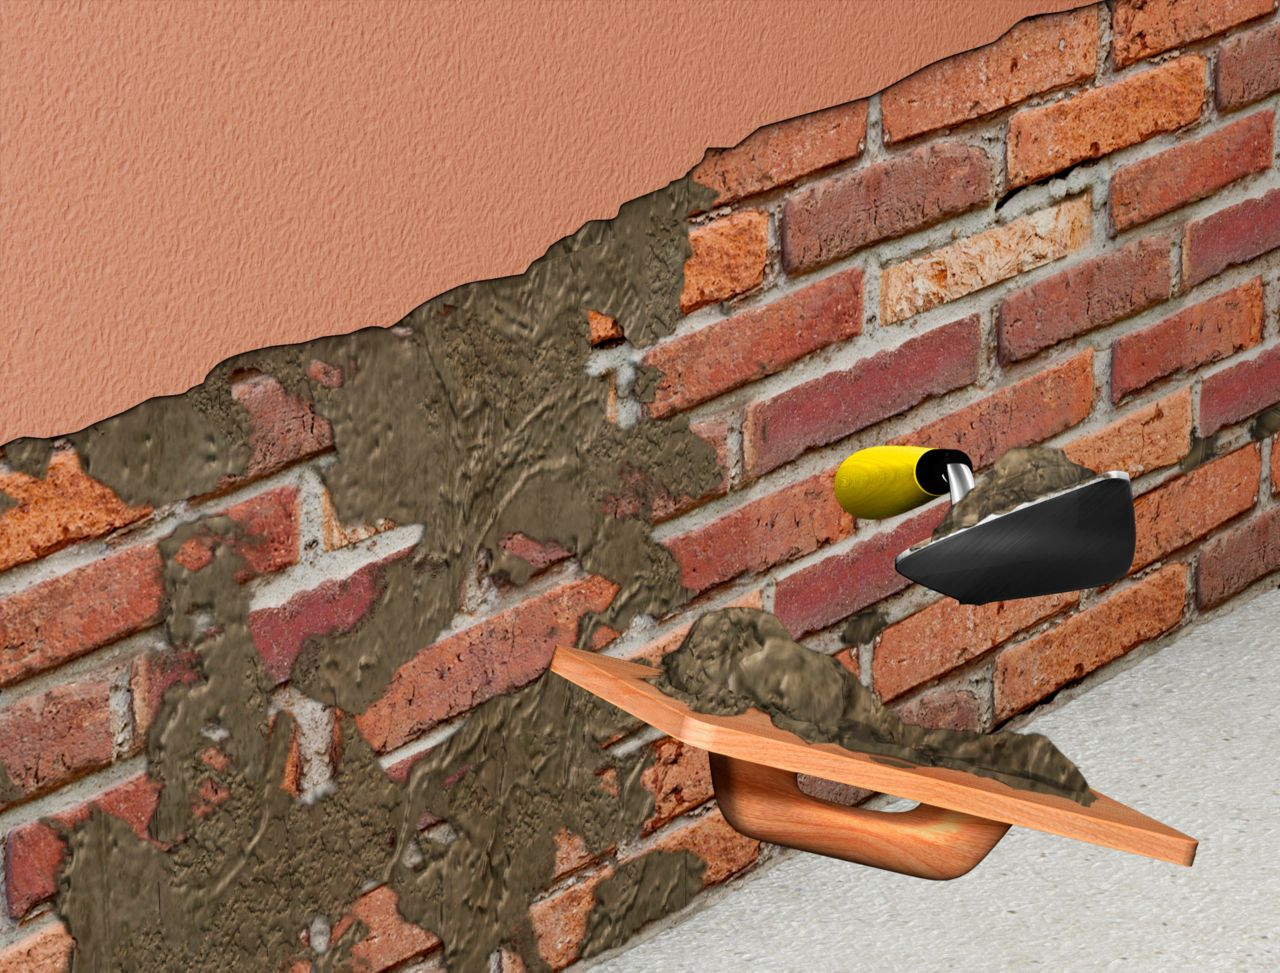 Application of renovation mortar on the wall